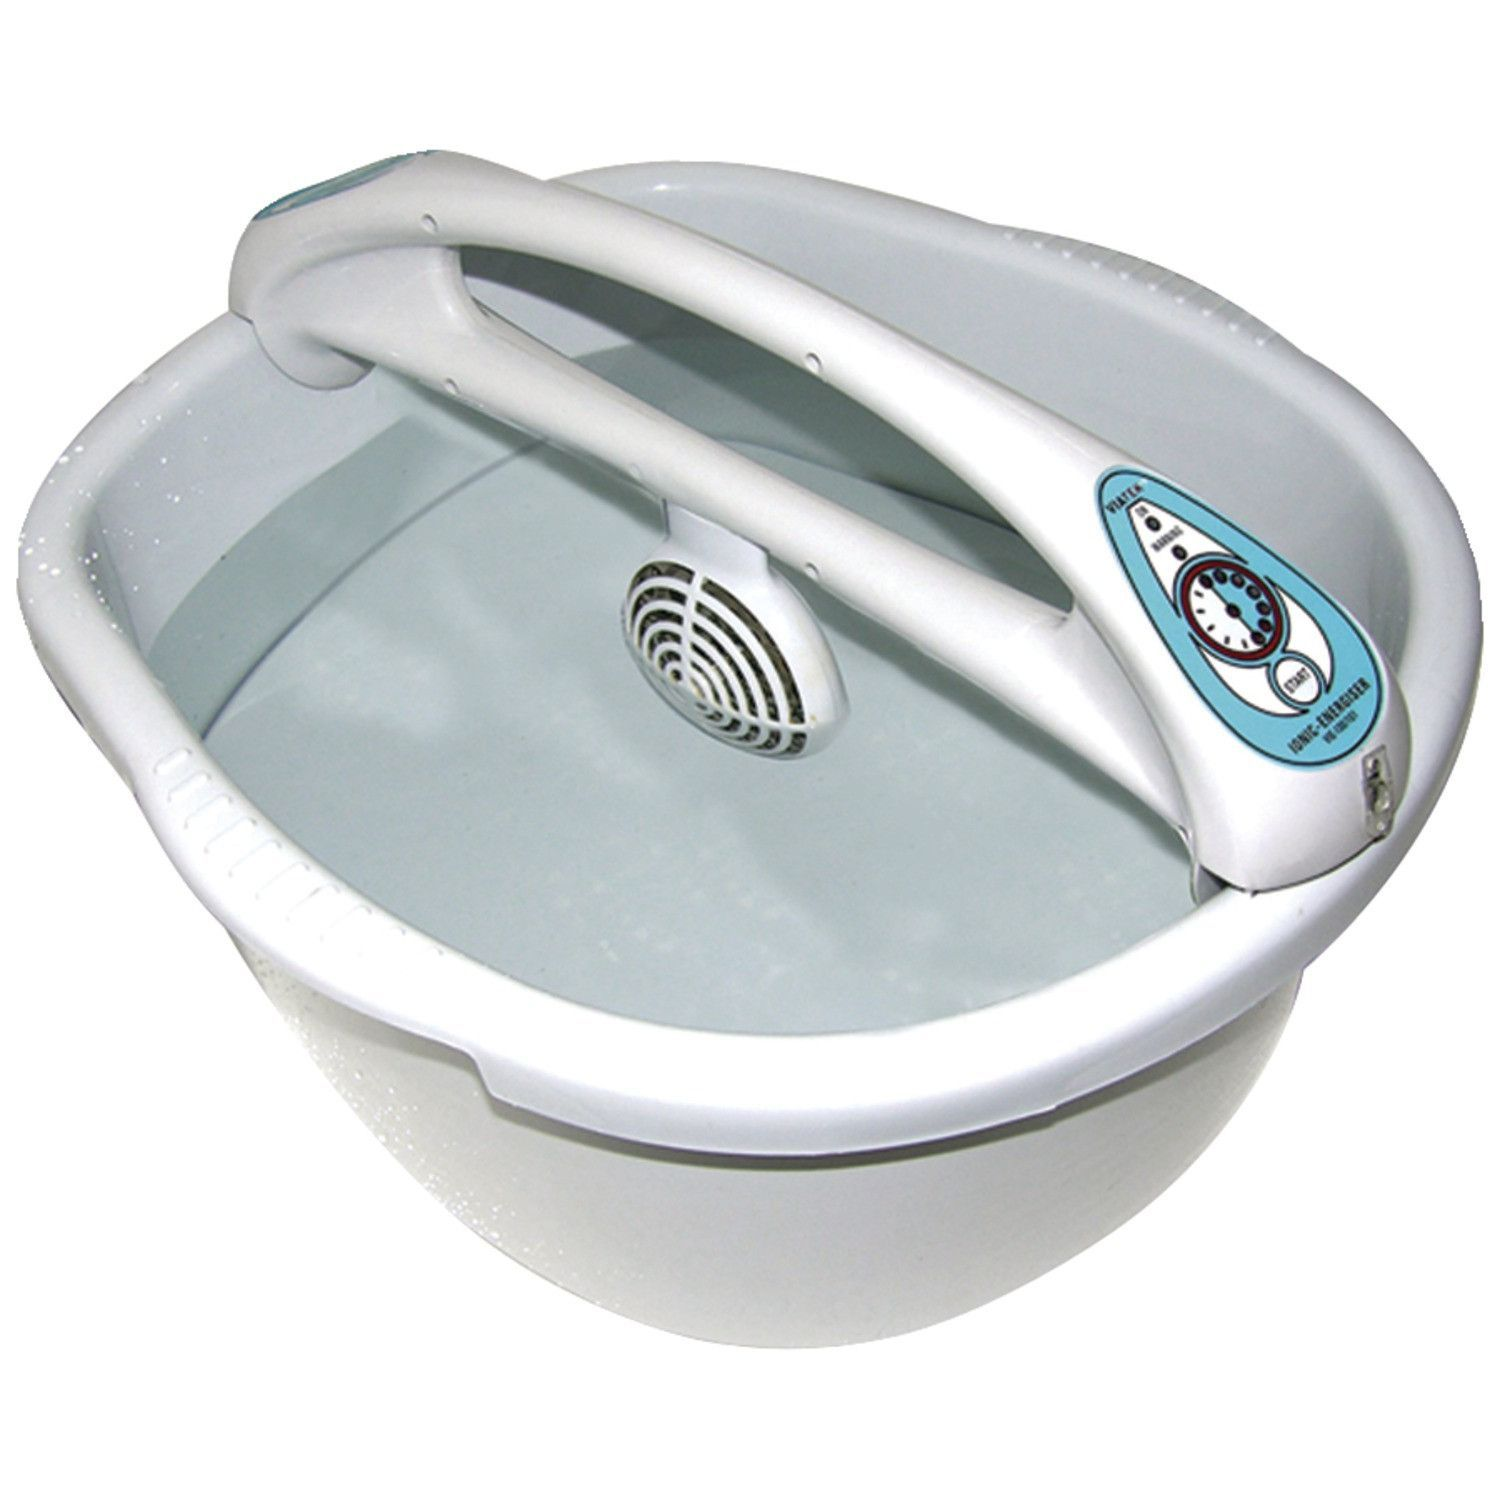 Viatek ionic energizer solo foot spa products viatek ionic energizer solo foot spa nvjuhfo Images